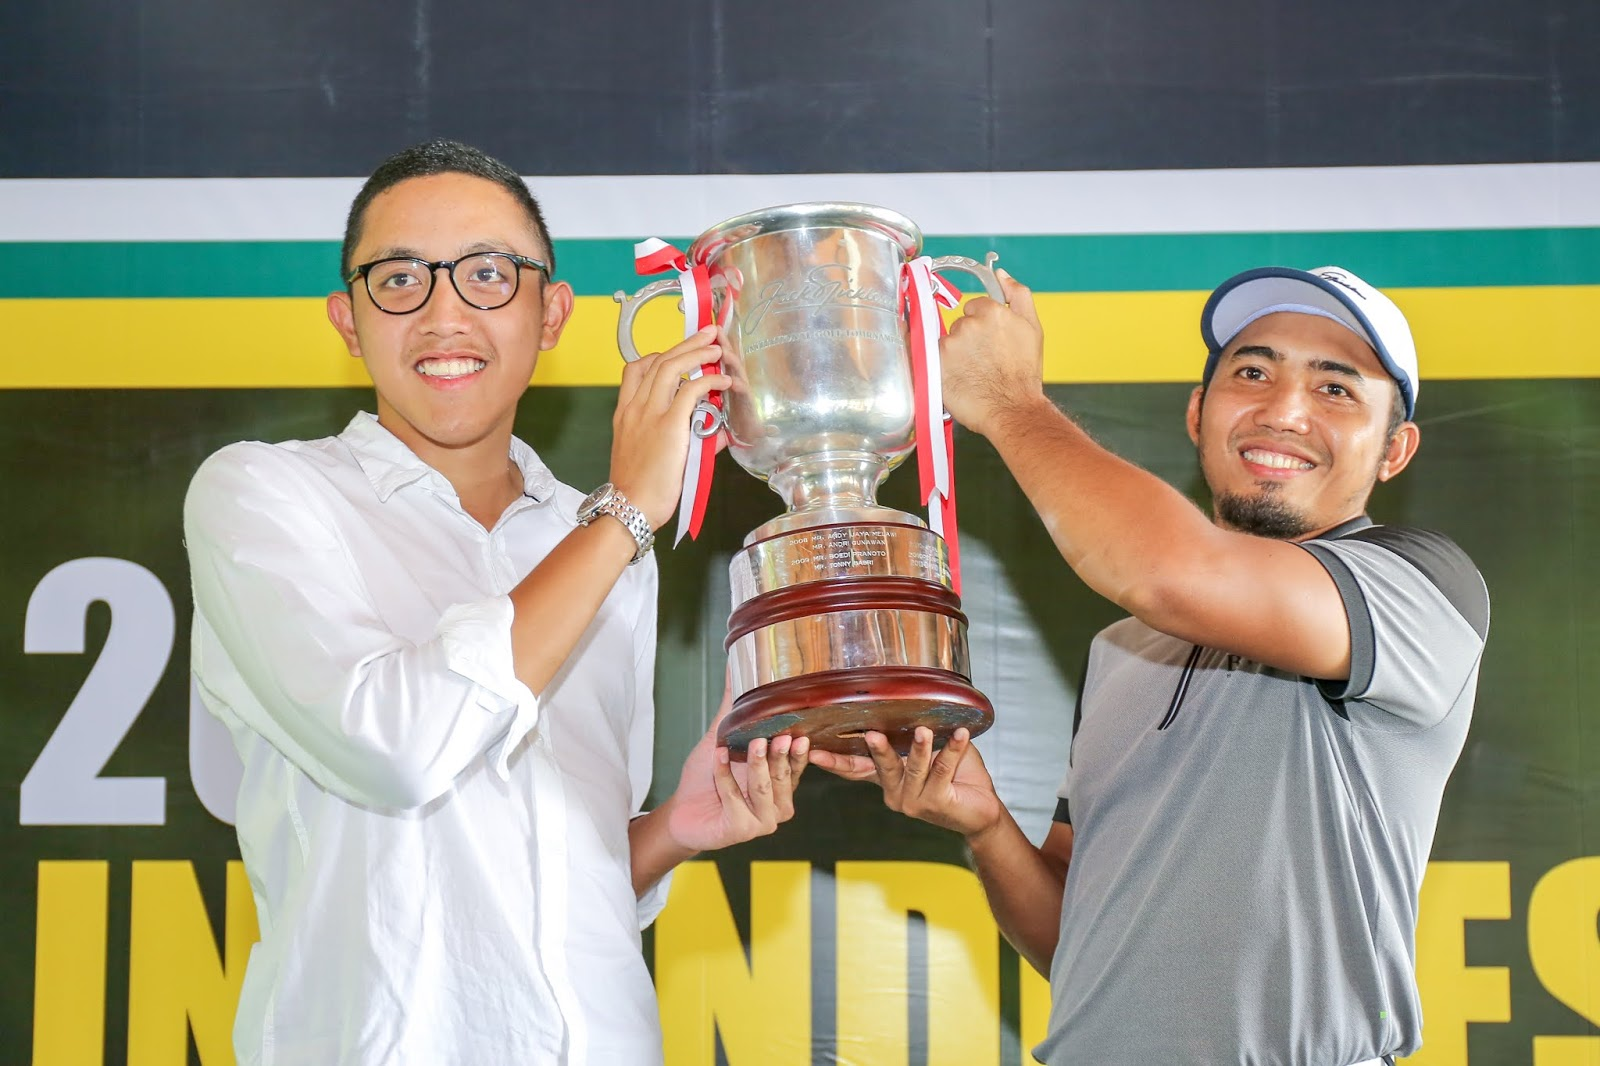 Menang lomba golf, tips menang golf